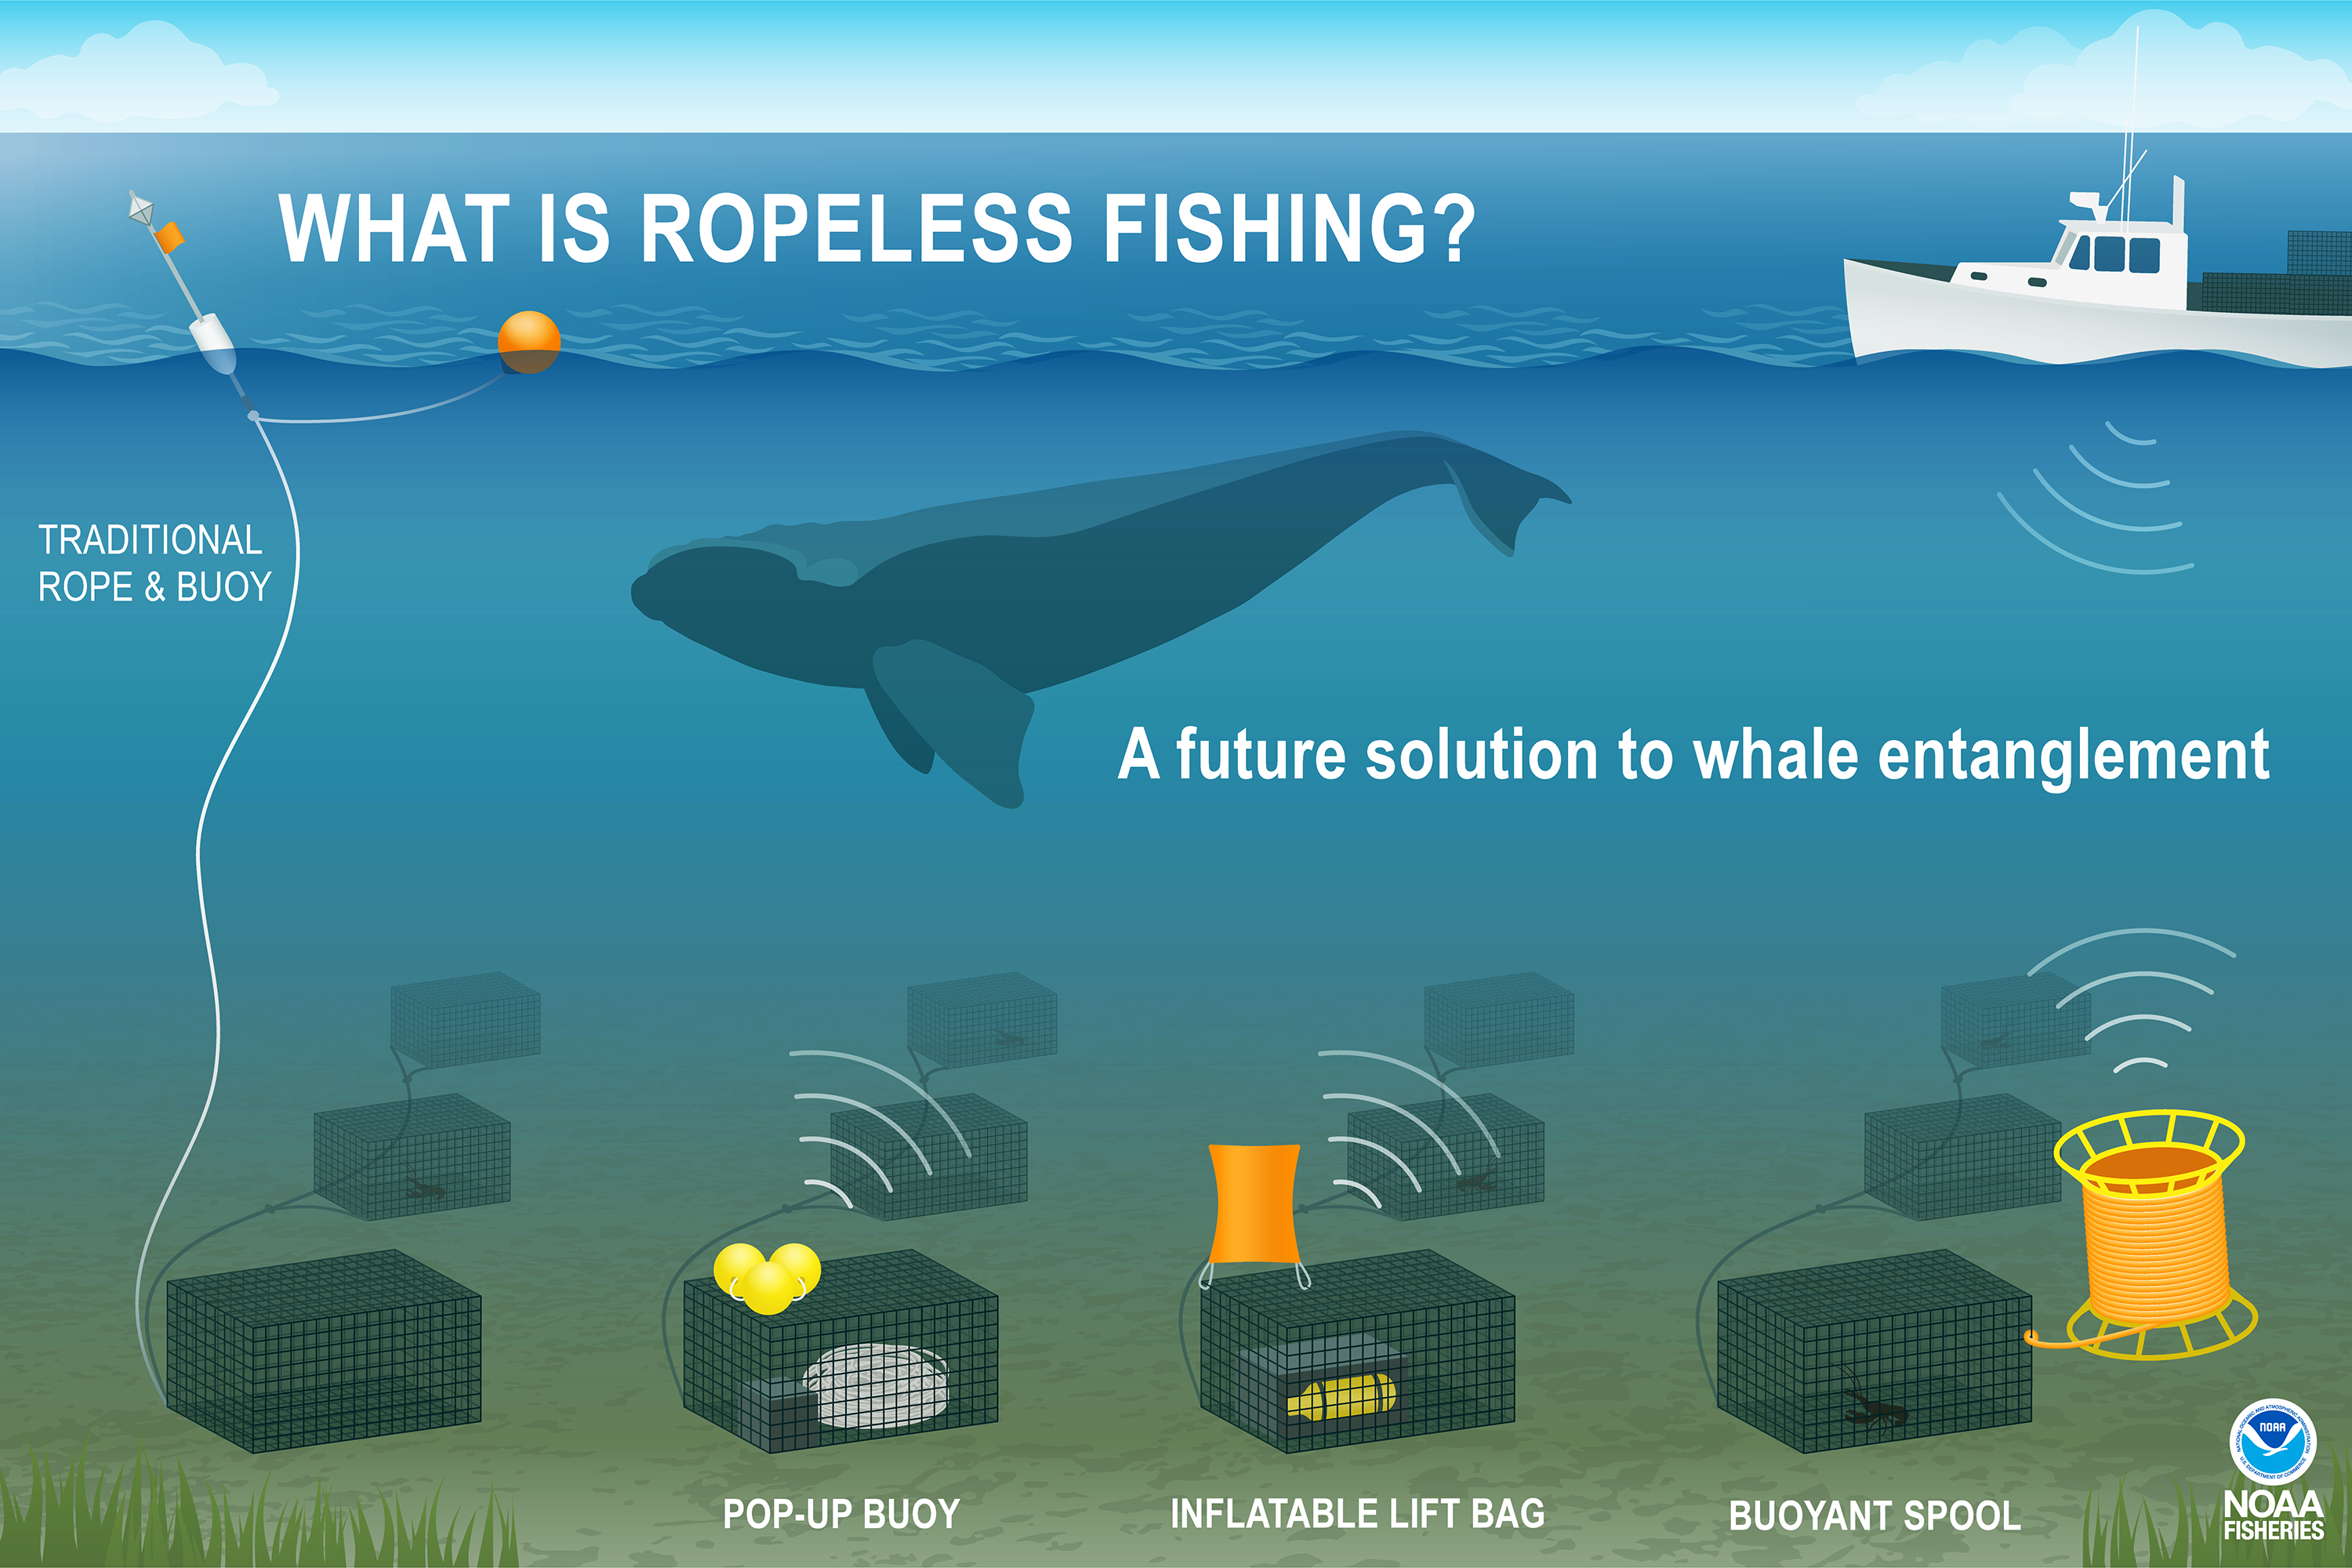 This illustration shows the rope and buoy system traditionally used for lobster fishing in contrast to three different types of ropeless fishing gear designed to prevent whale entanglement. A right whale is at the center, swimming safely above the ropeless systems on the ocean floor, each connected to a series of lobster traps, but toward an entanglement hazard posed by traditional fishing gear with a rope connecting the surface buoy above to lobster traps below. A lobster fishing boat is at the top right a